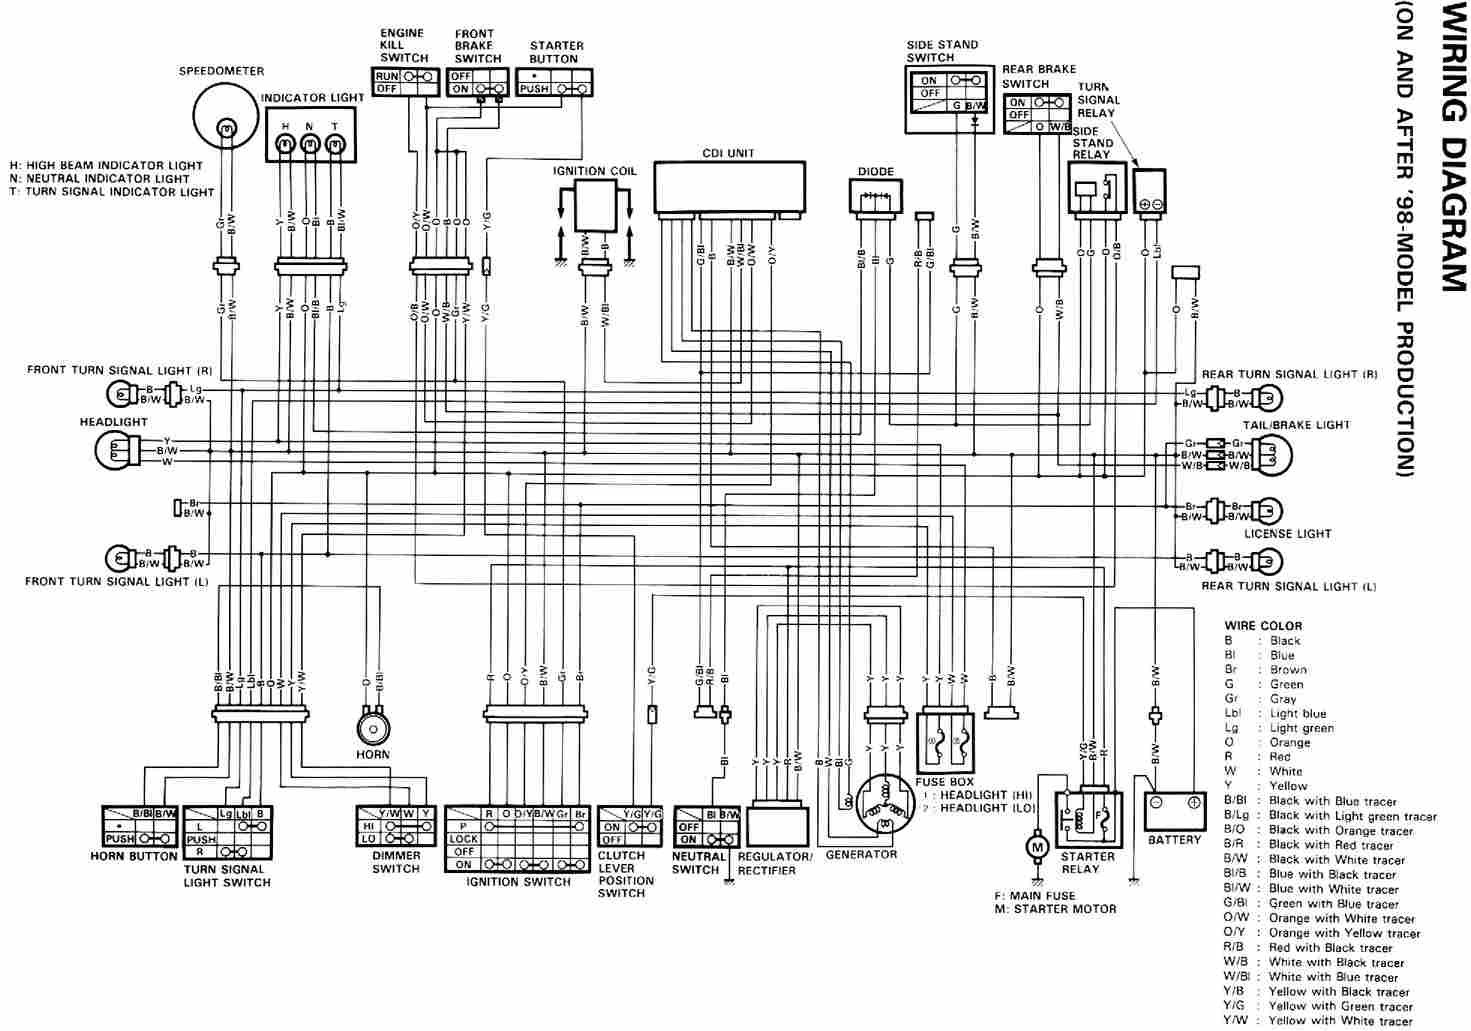 2015 peterbilt 320 wiring diagram